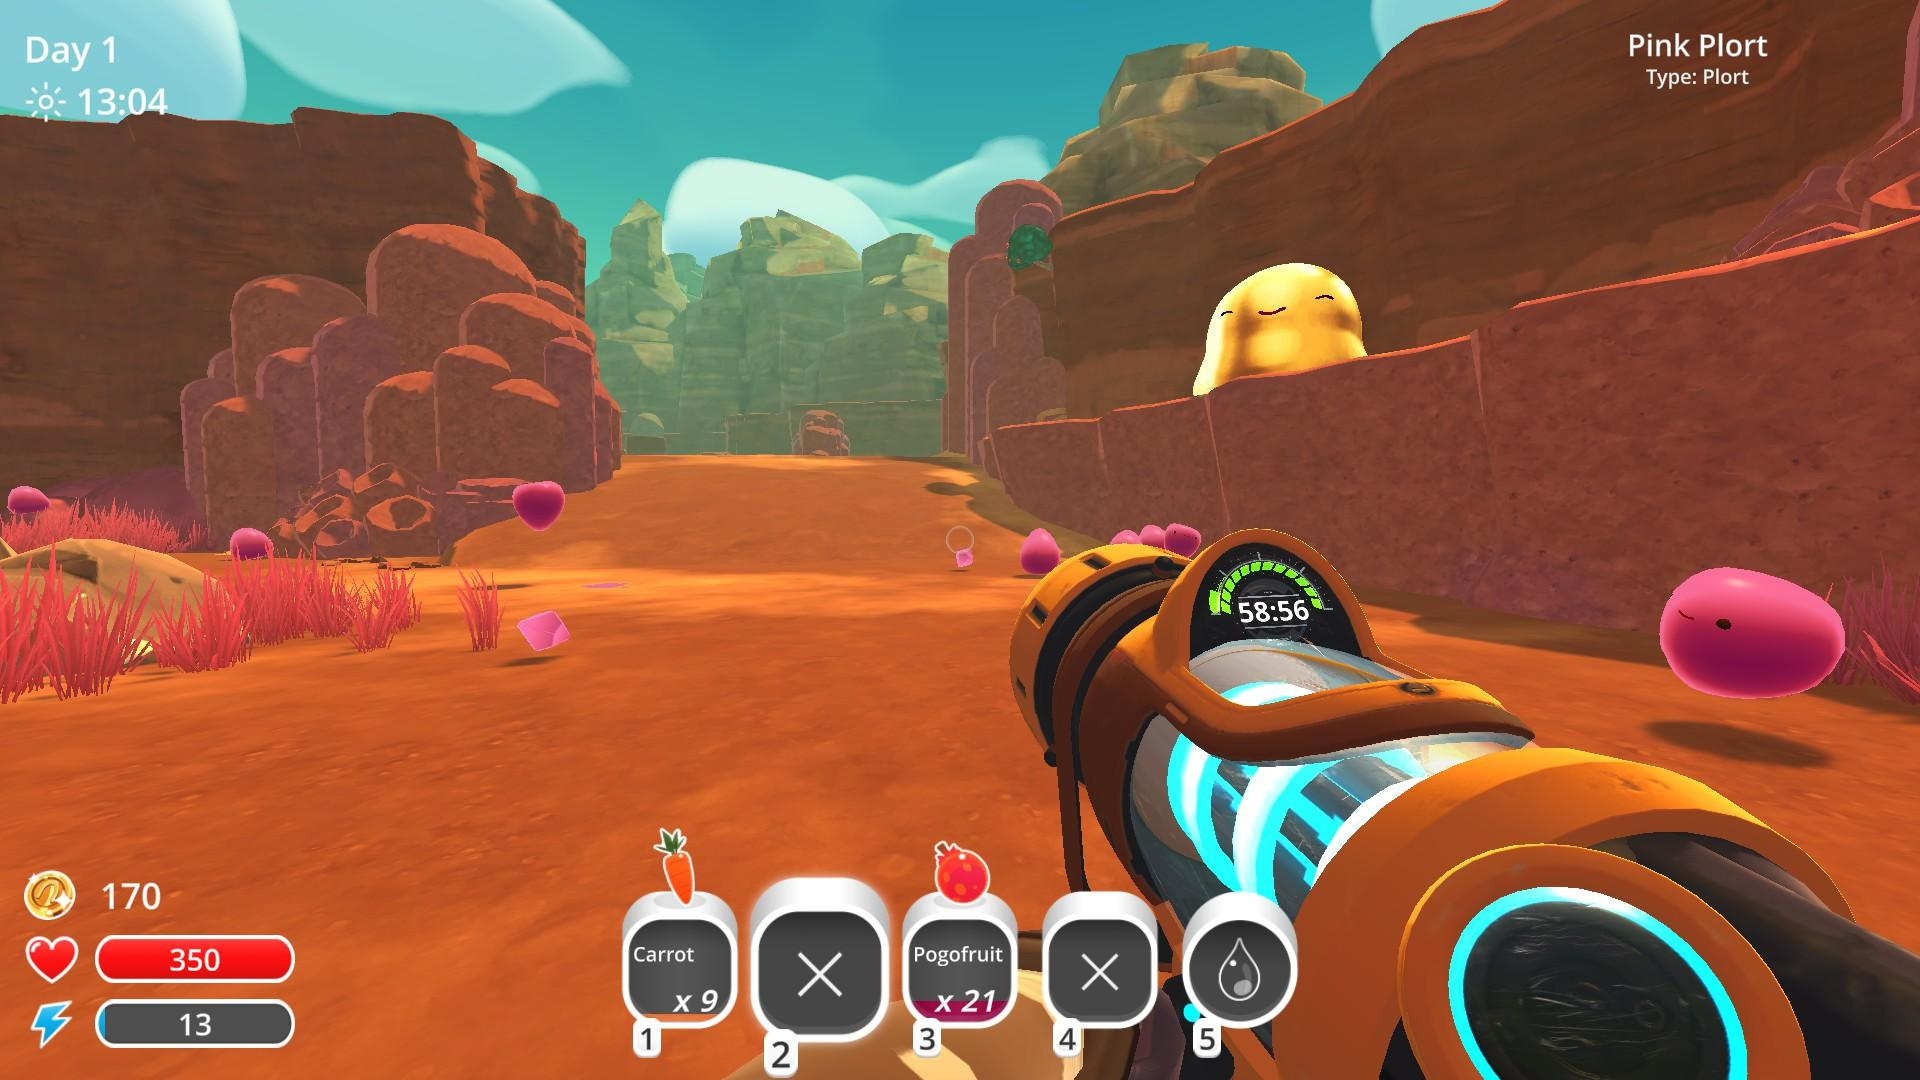 Slime Rancher - Detailed Guide to Rush Mode and Achieving Rush